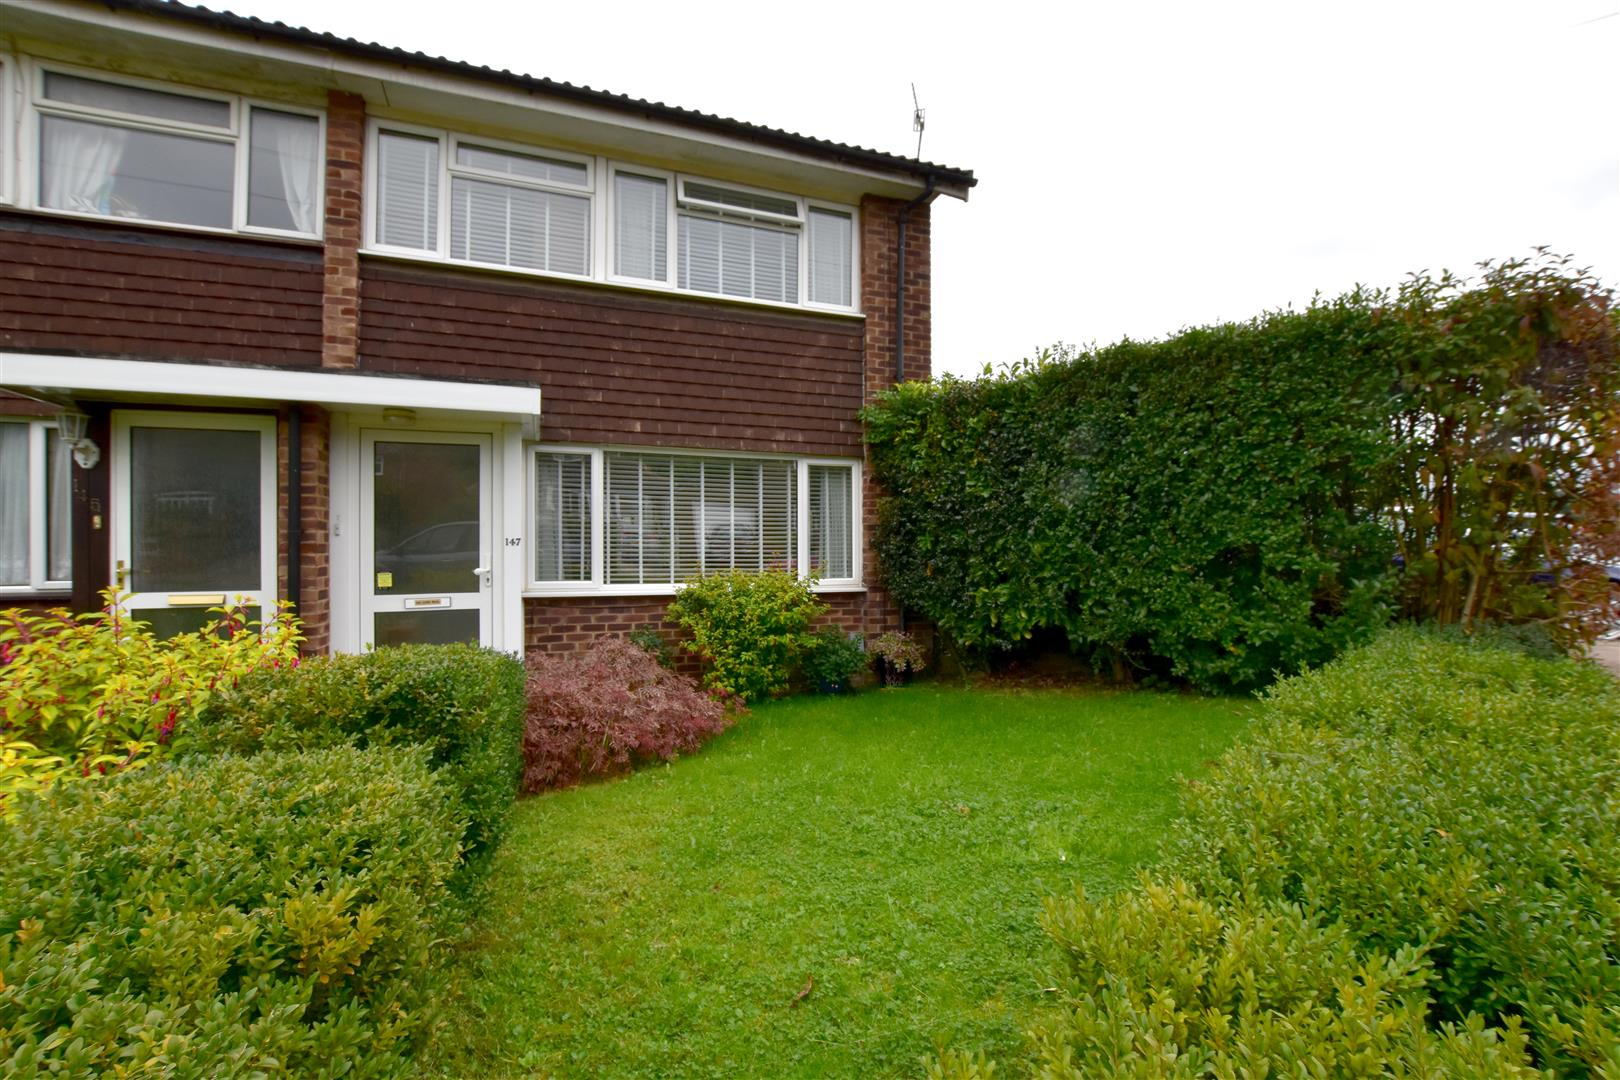 3 Bedrooms End Of Terrace House for sale in Nutfield Road, Merstham, Redhill